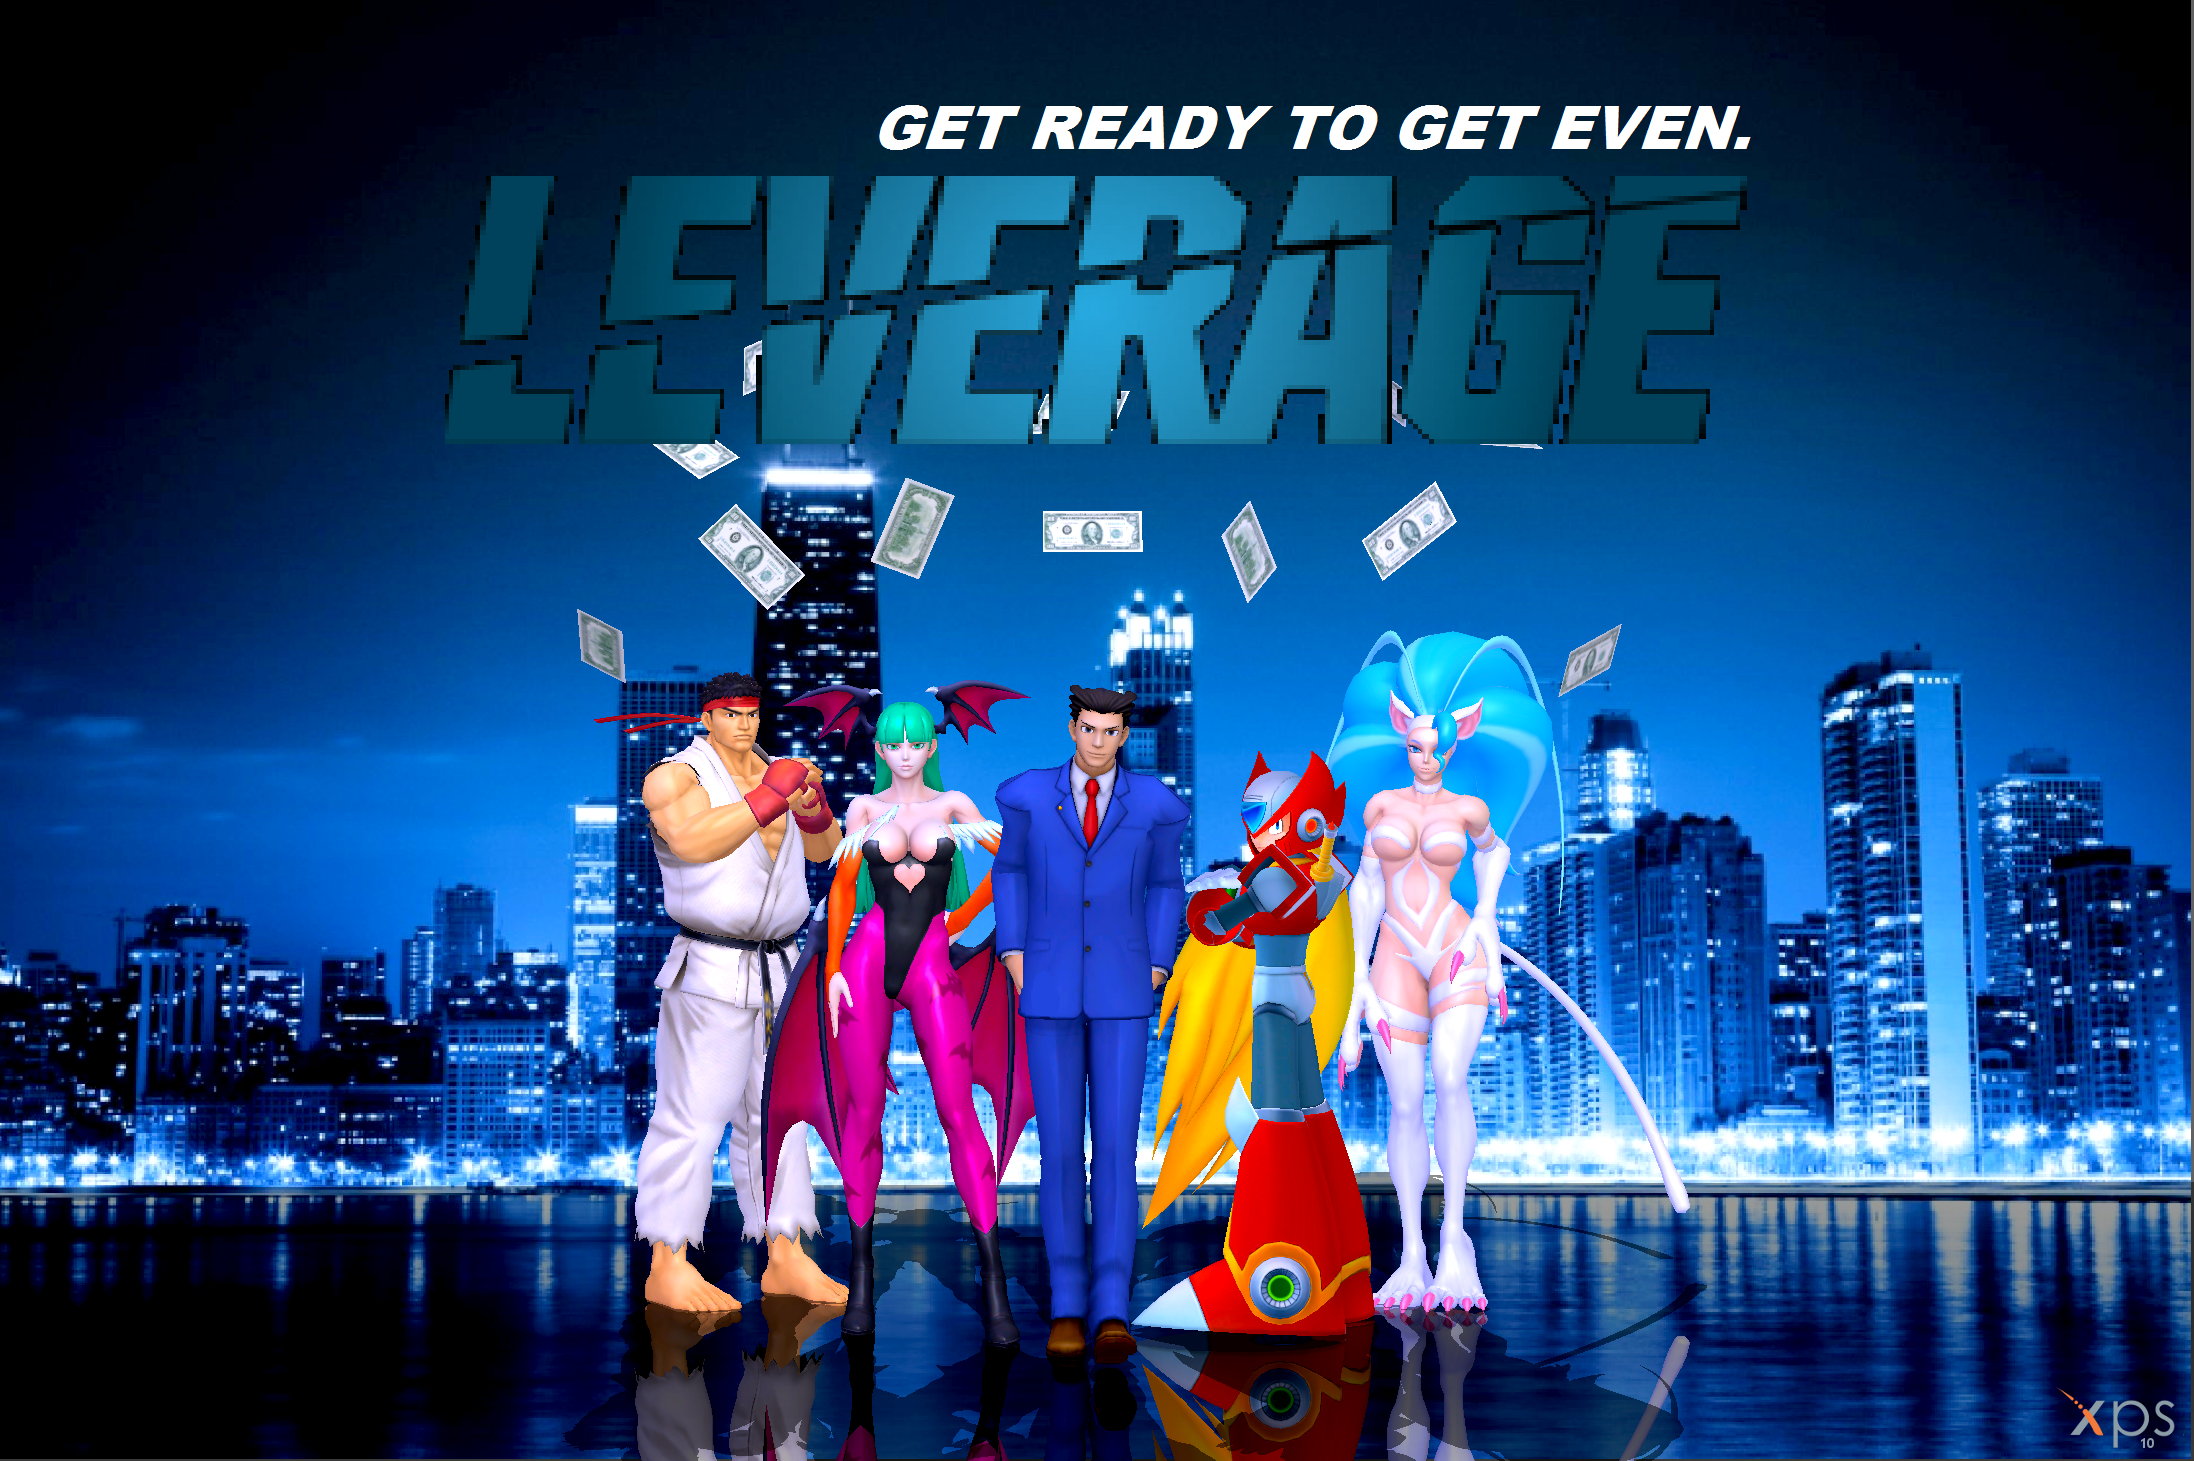 Capcom does Leverage by NekoHybrid